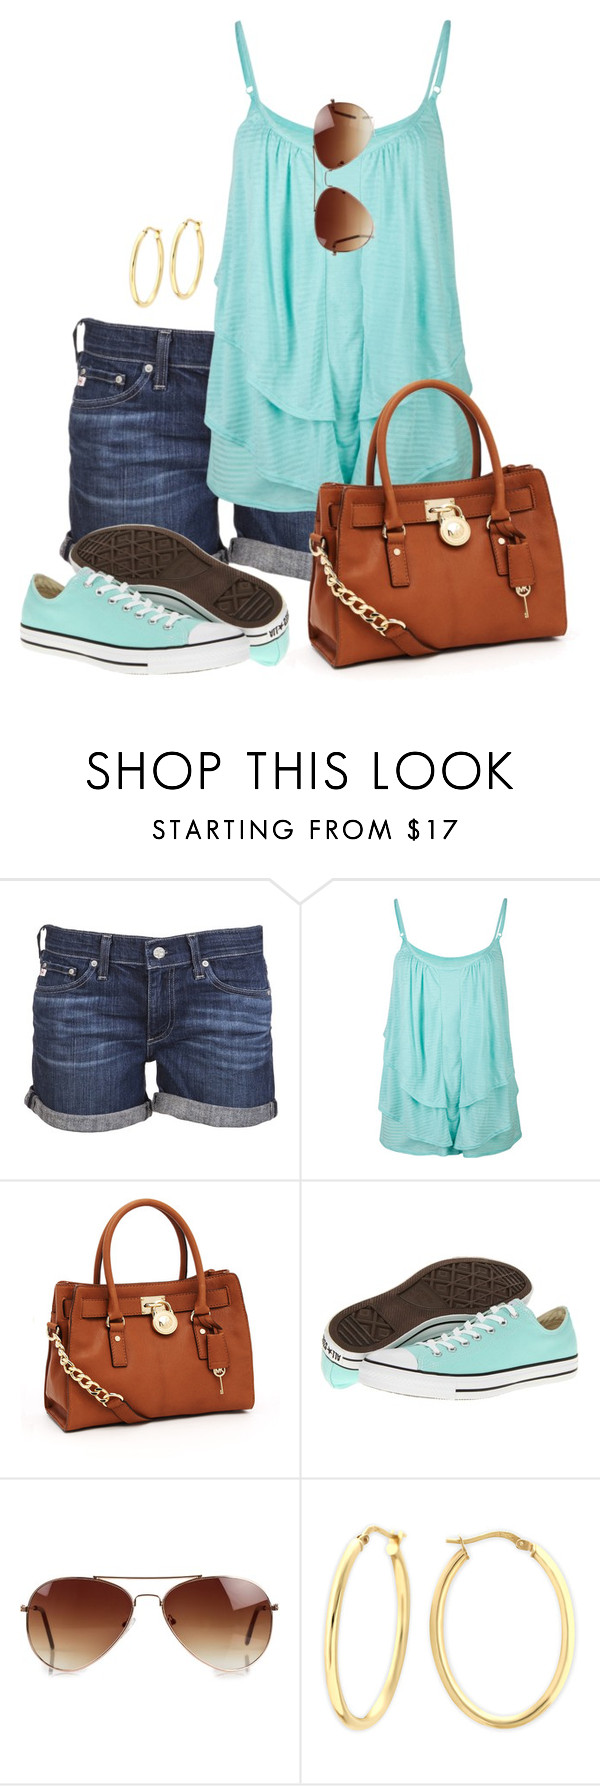 """""""Spaghetti Straps"""" by wishlist123 ❤ liked on Polyvore featuring AG Adriano Goldschmied, Full Tilt, MICHAEL Michael Kors, Converse, Rut&Circle, women's clothing, women's fashion, women, female and woman"""